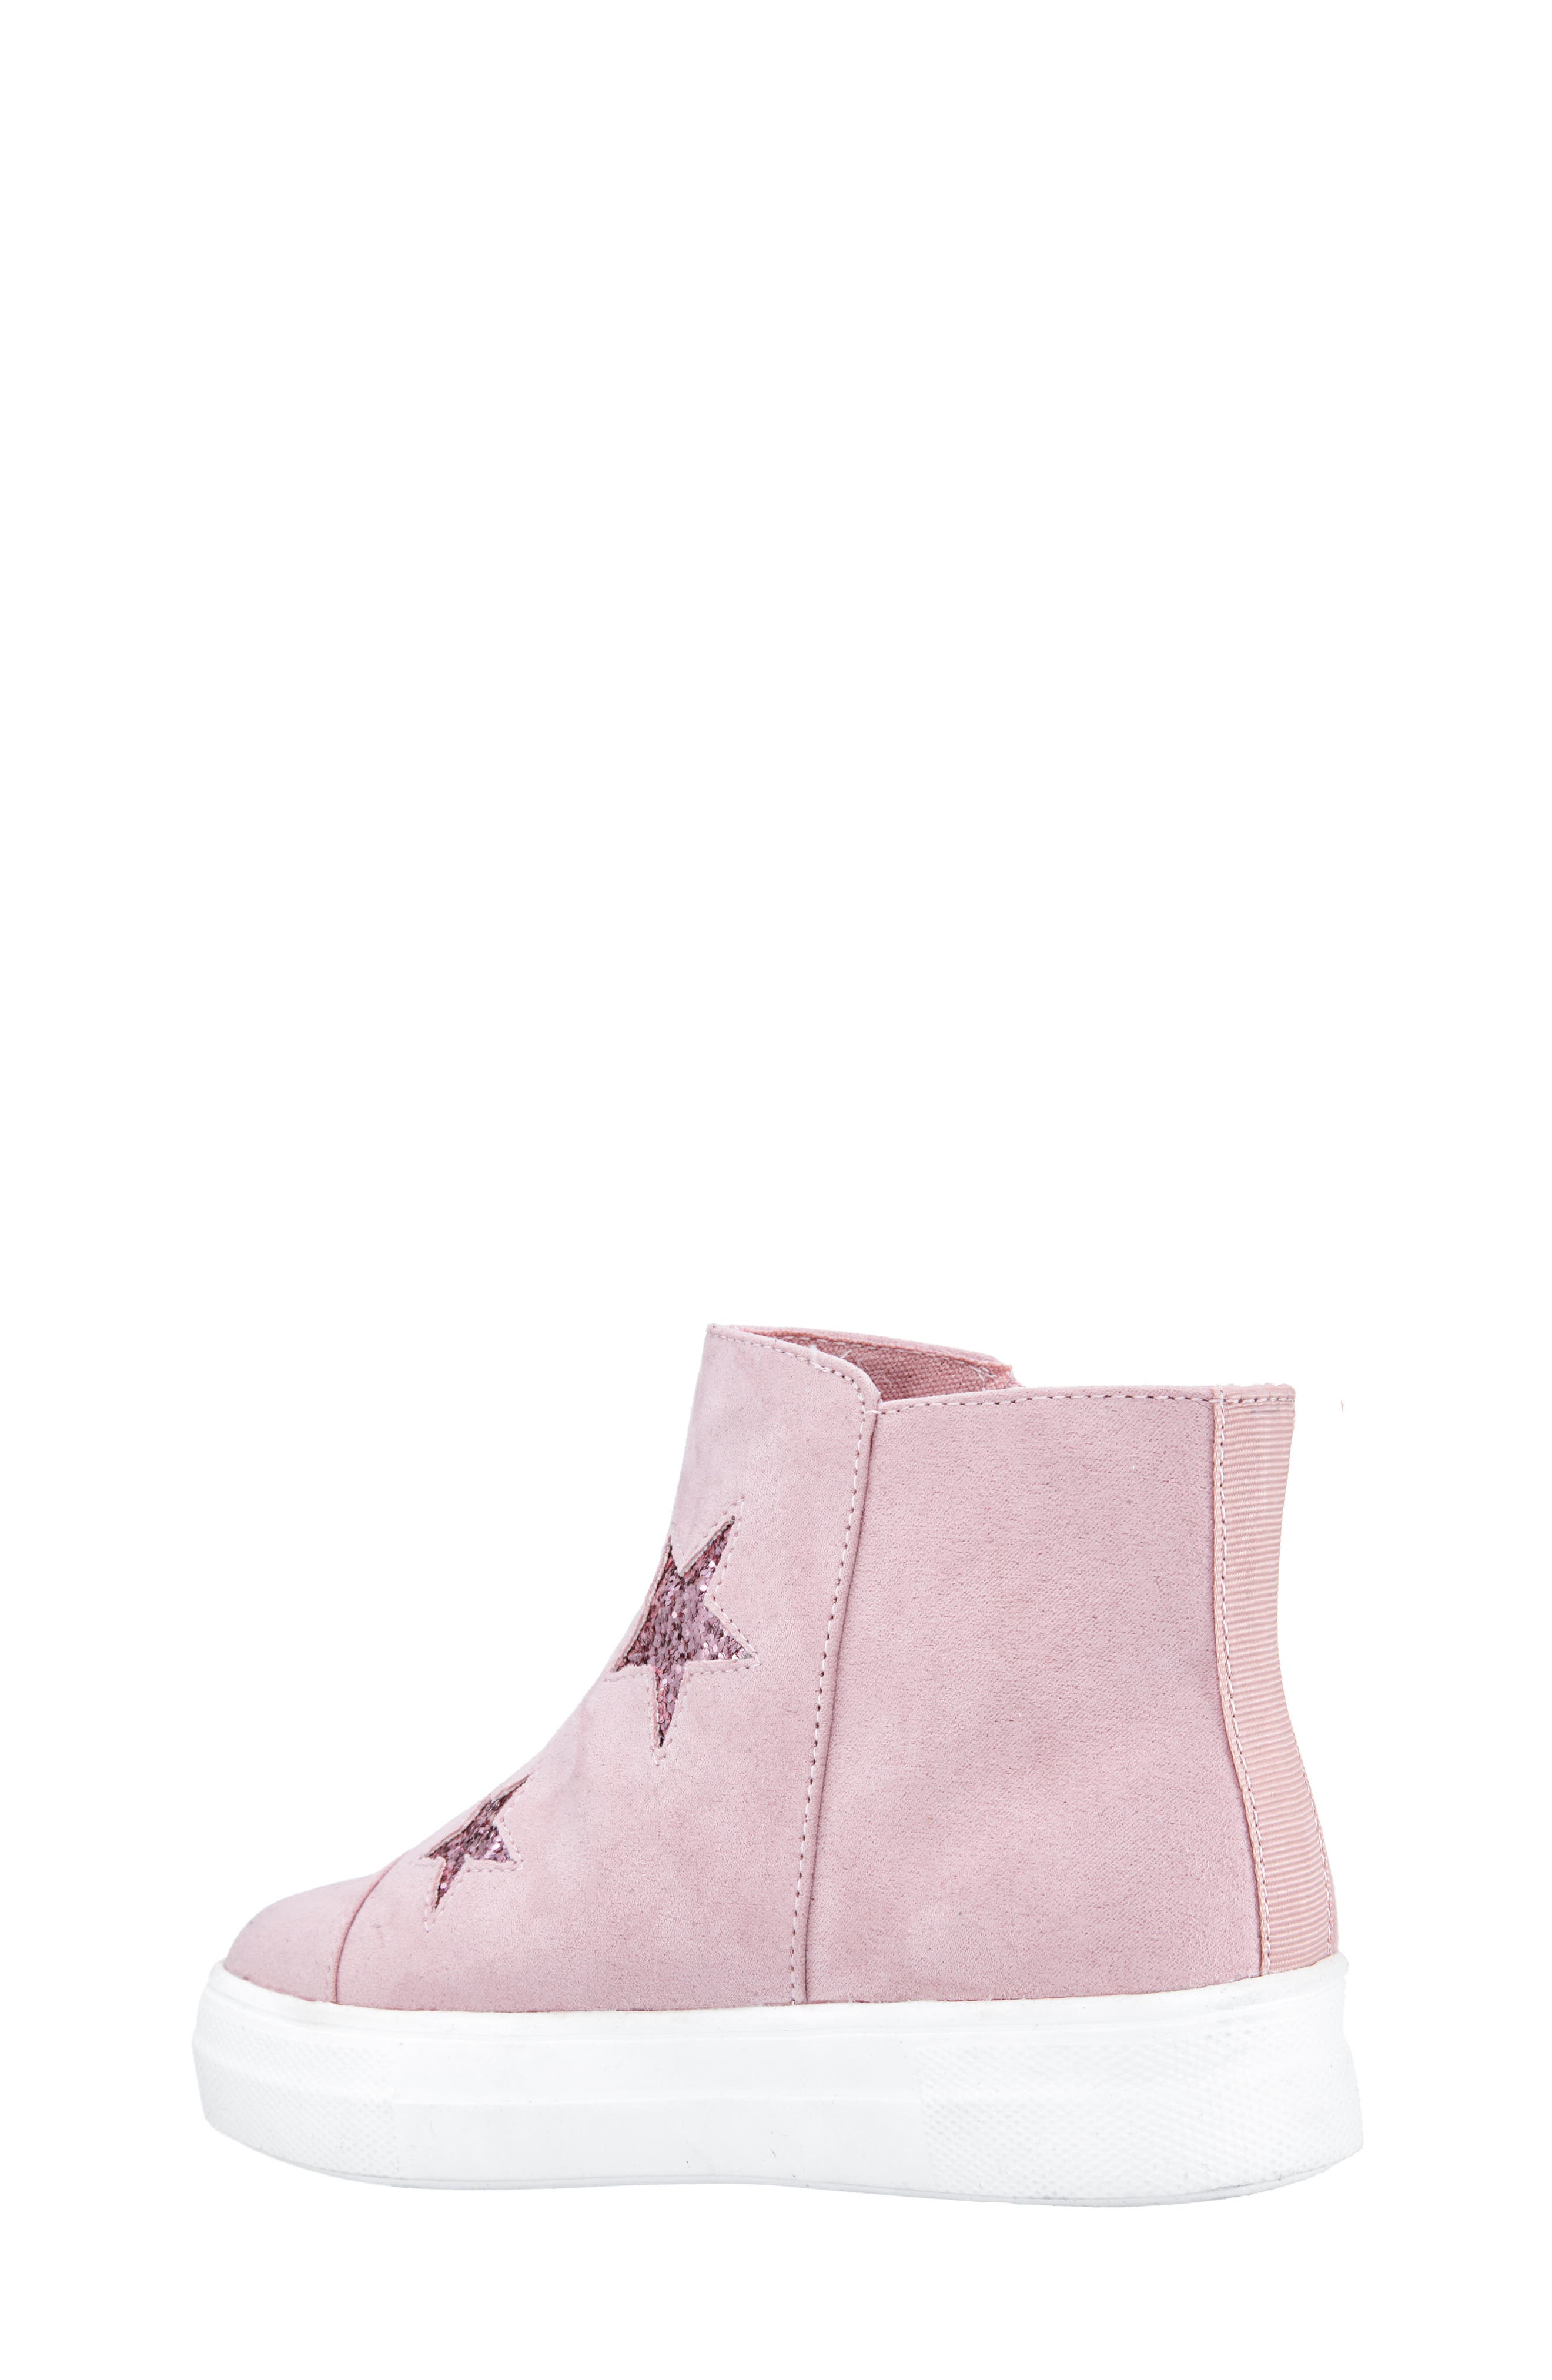 Jacqui Glitter High Top Sneaker,                             Alternate thumbnail 2, color,                             BLUSH MICRO SUEDE